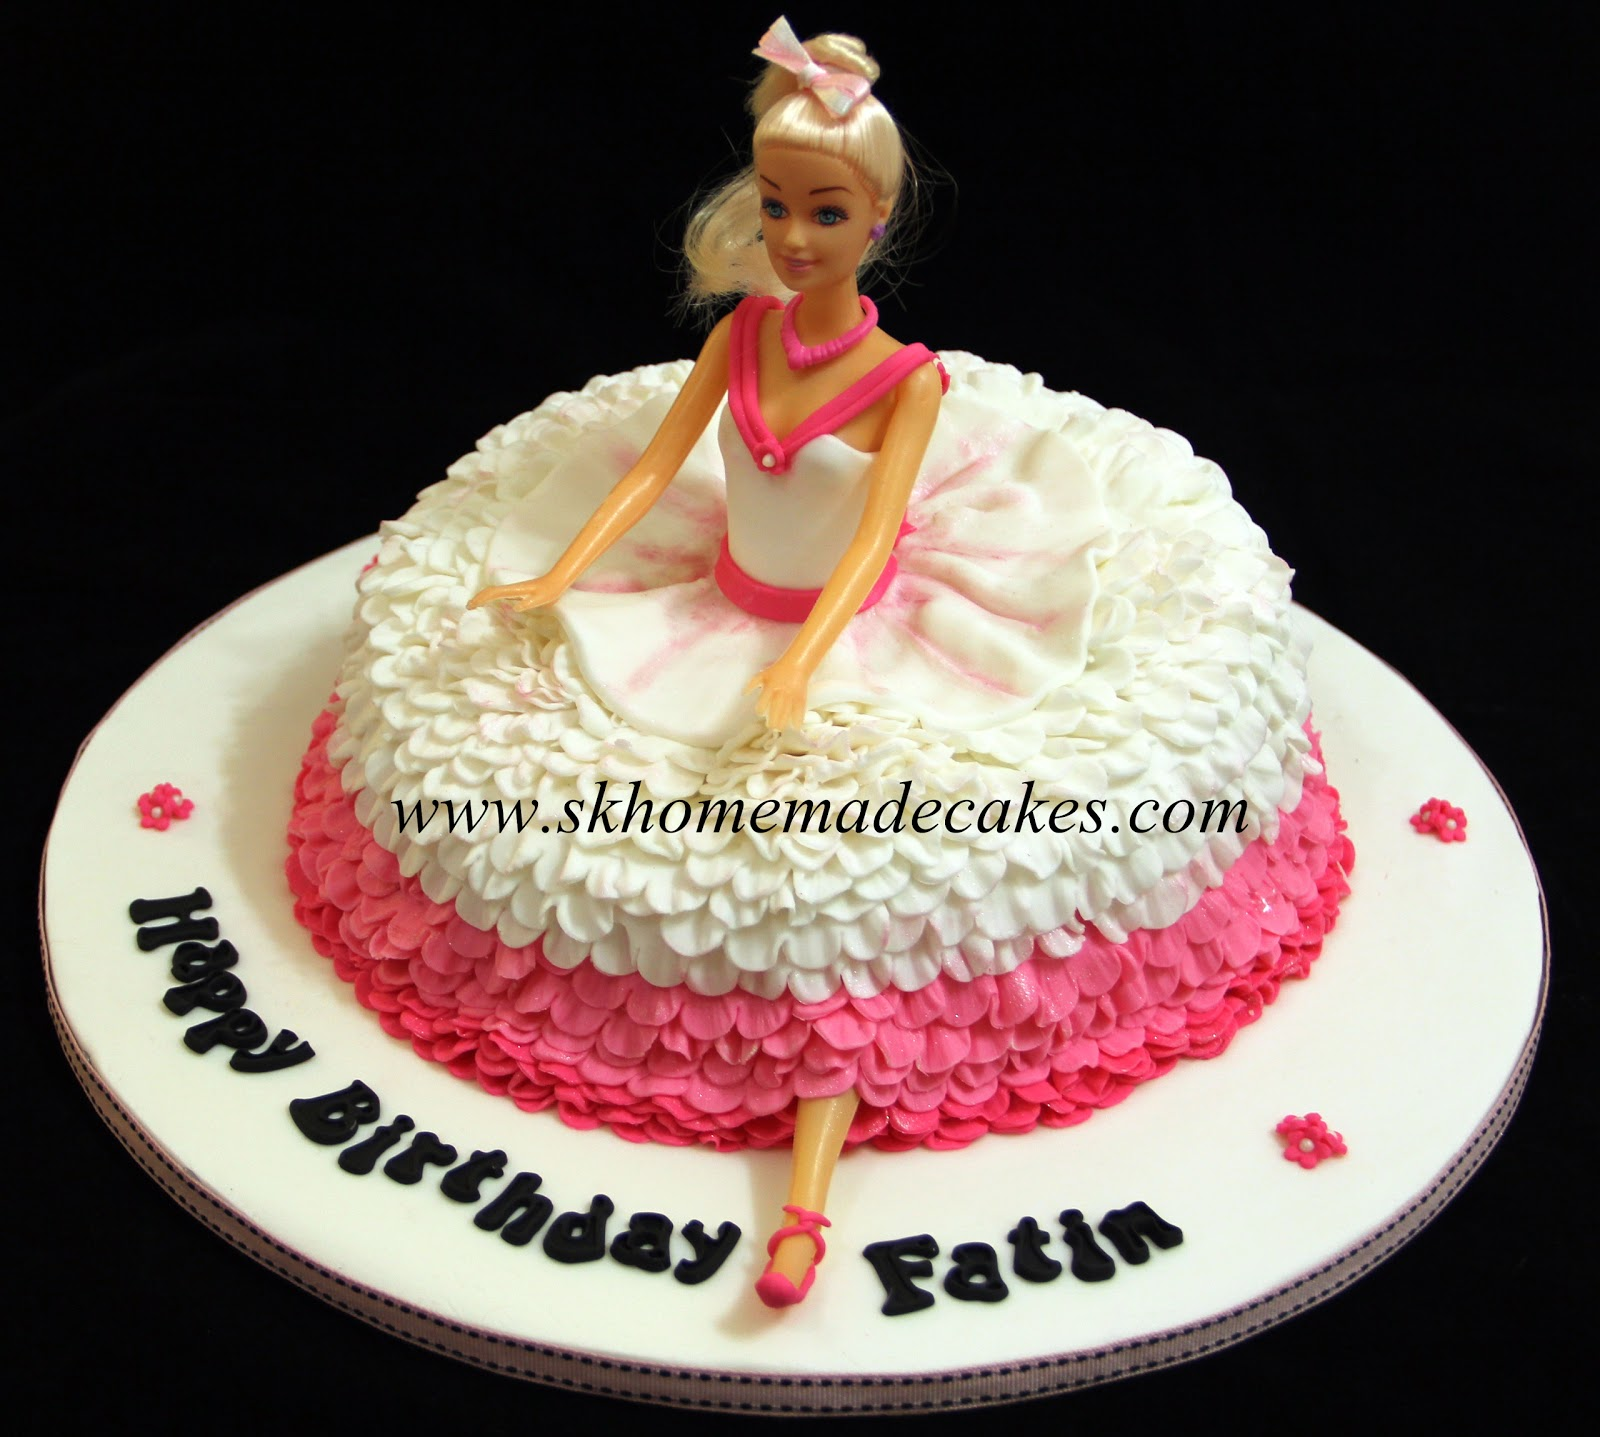 Homemade Cake Design : Barbie Ballerina Cake Ideas 74823 Homemade Cakes Ballerina